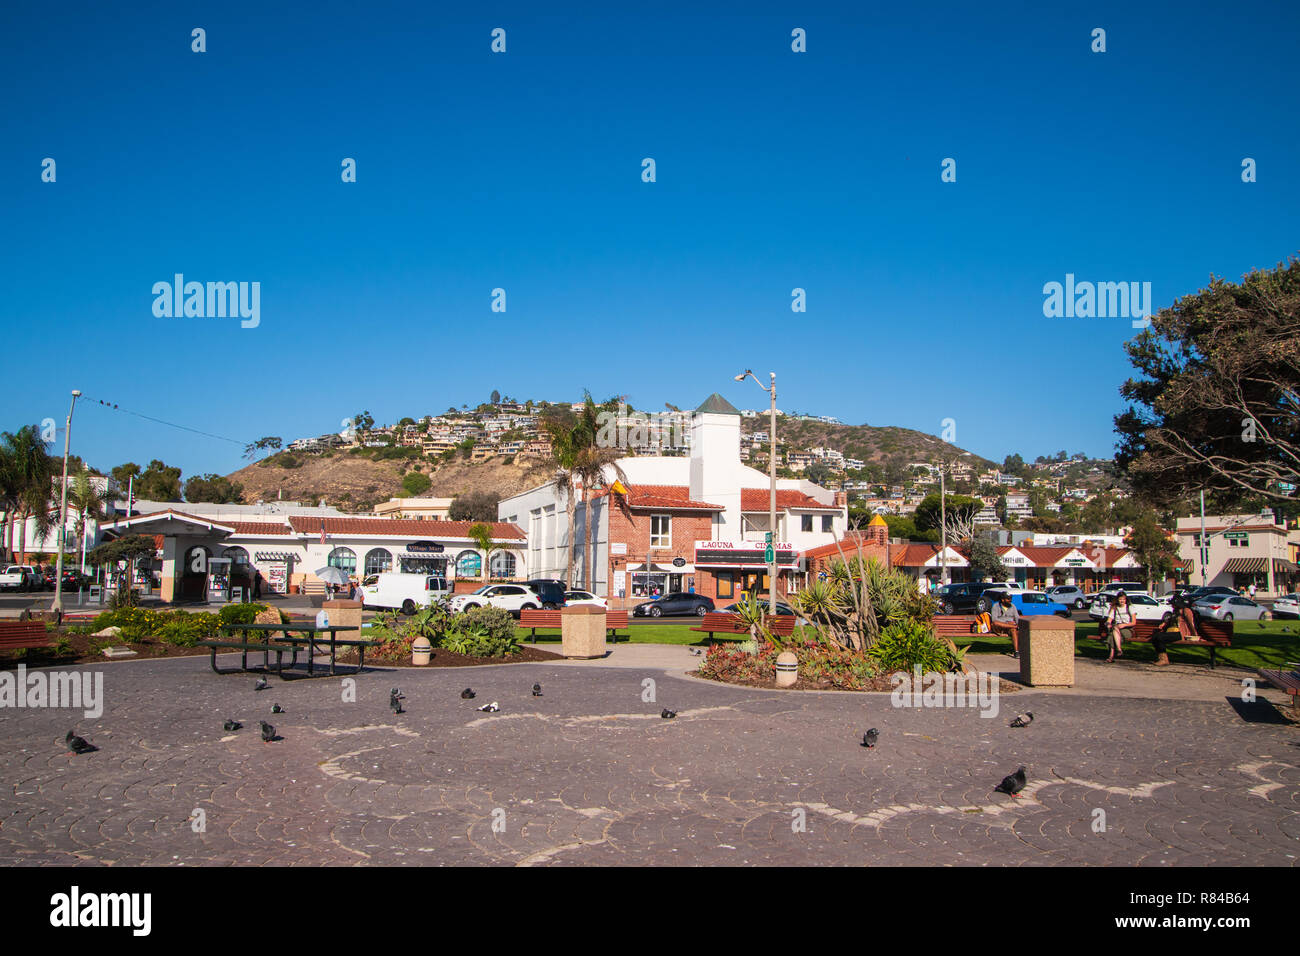 Laguna Beach, California - October 9, 2018: Housing development on the side of a mountain overlooking a small park with people relaxing on benches as  Stock Photo